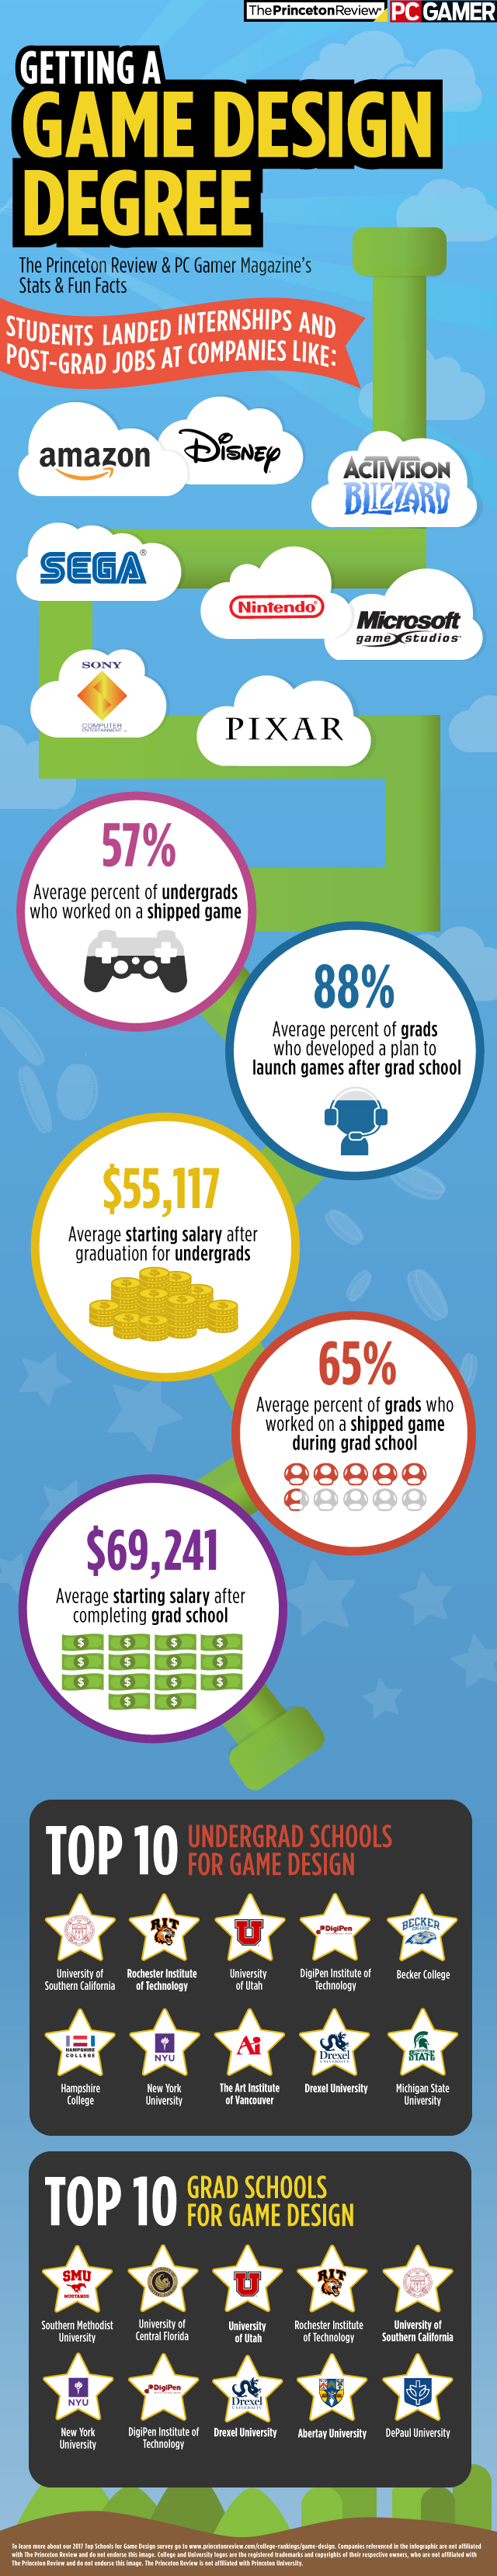 Game Design degree infographic